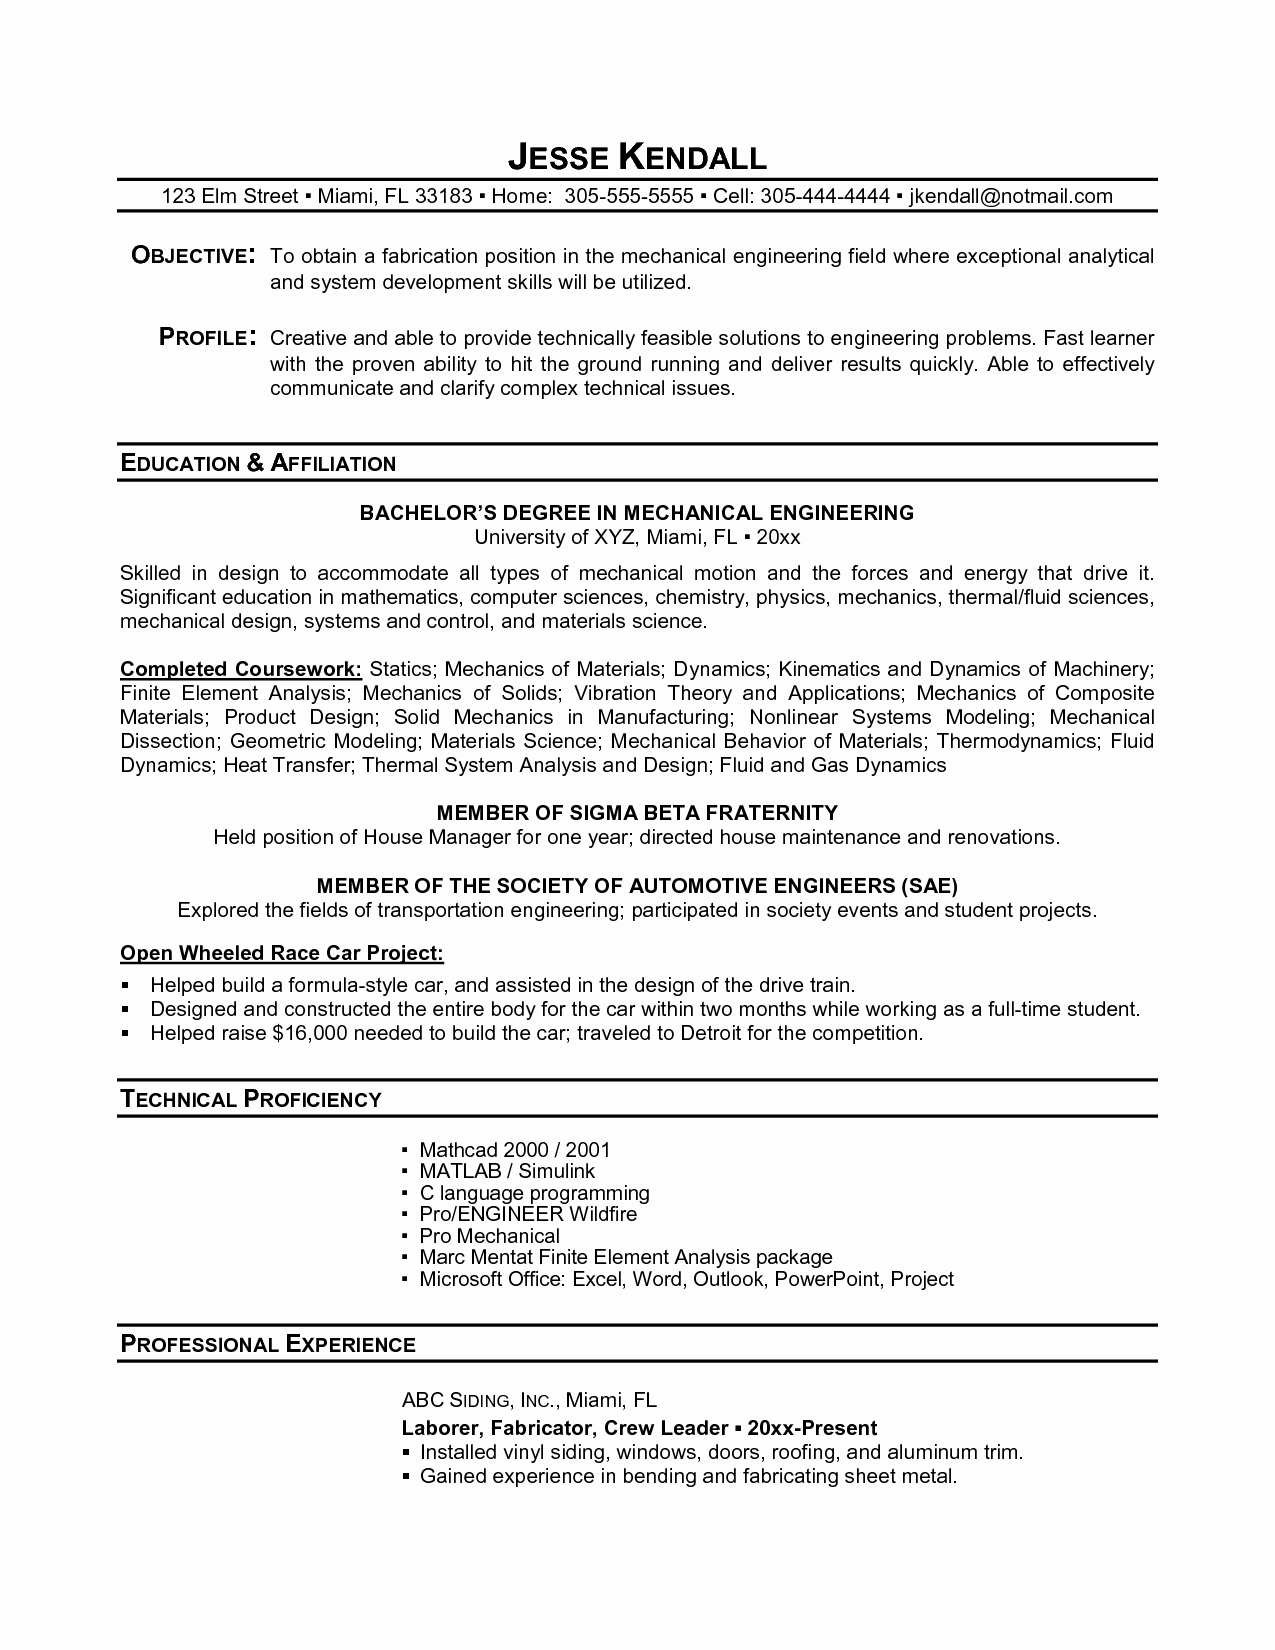 Free Resume Templates for Students Luxury Resume Examples Student Examples Collge High School